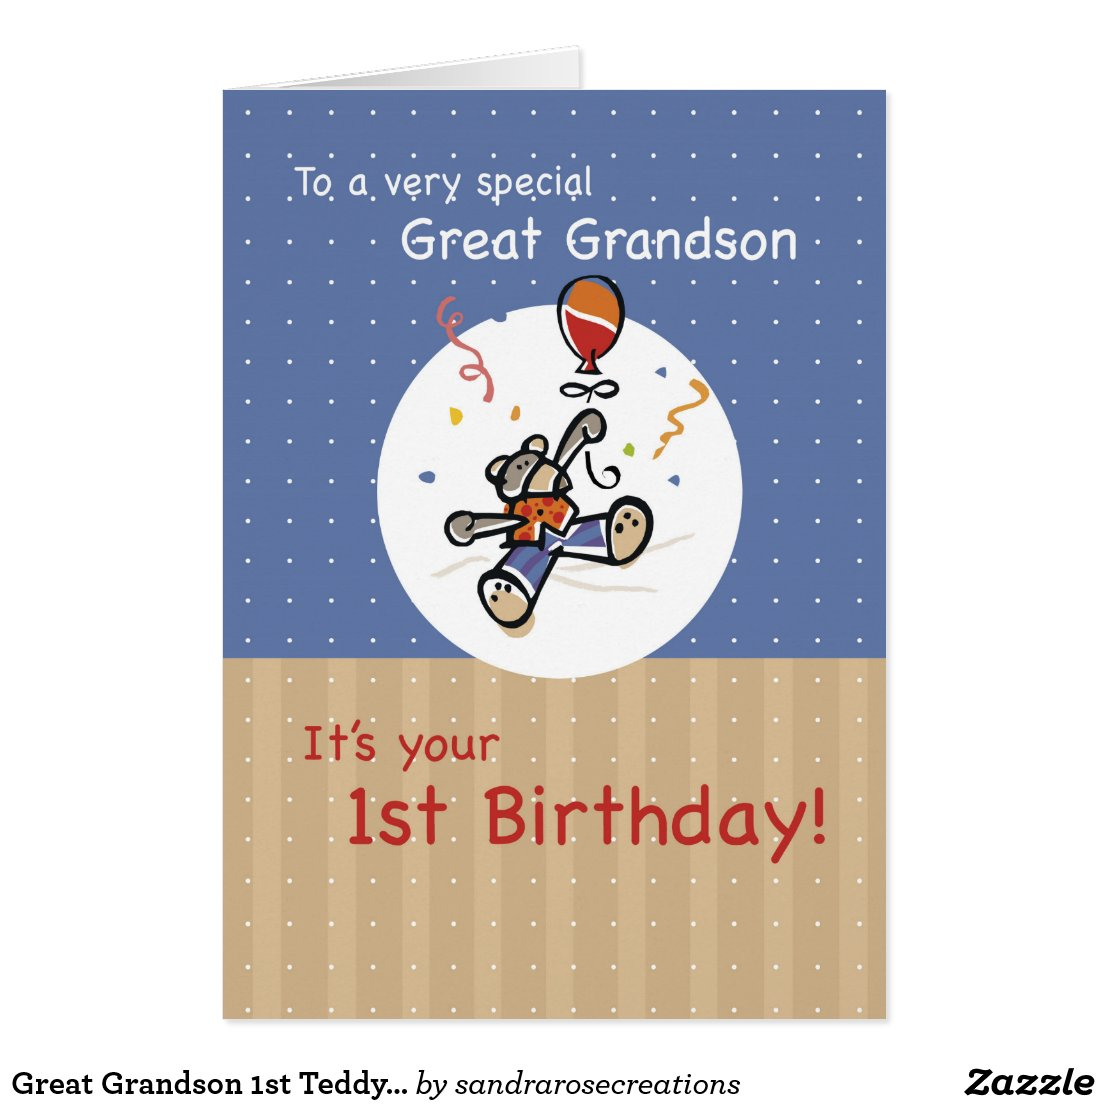 Great Grandson 1st Teddy Bear Balloon Birthday Card